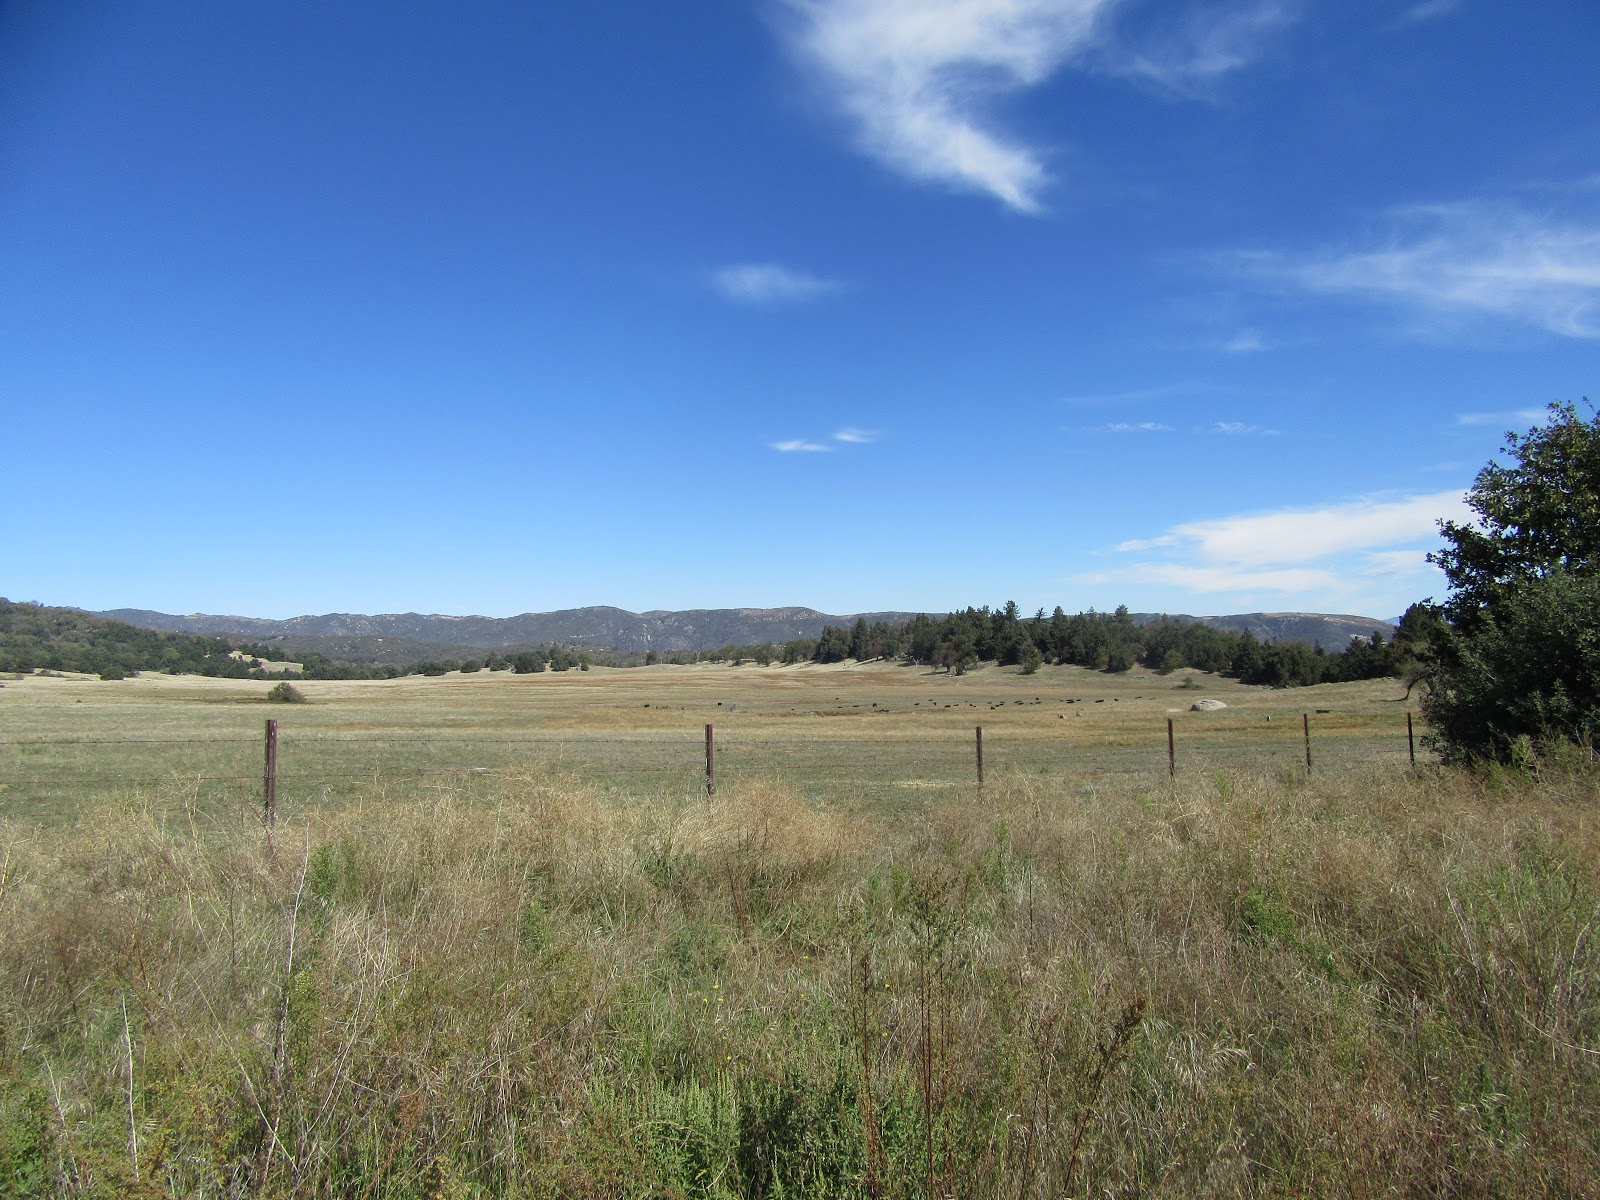 Climbing Palomar Mountain east by bike - views of open fields and cattle.